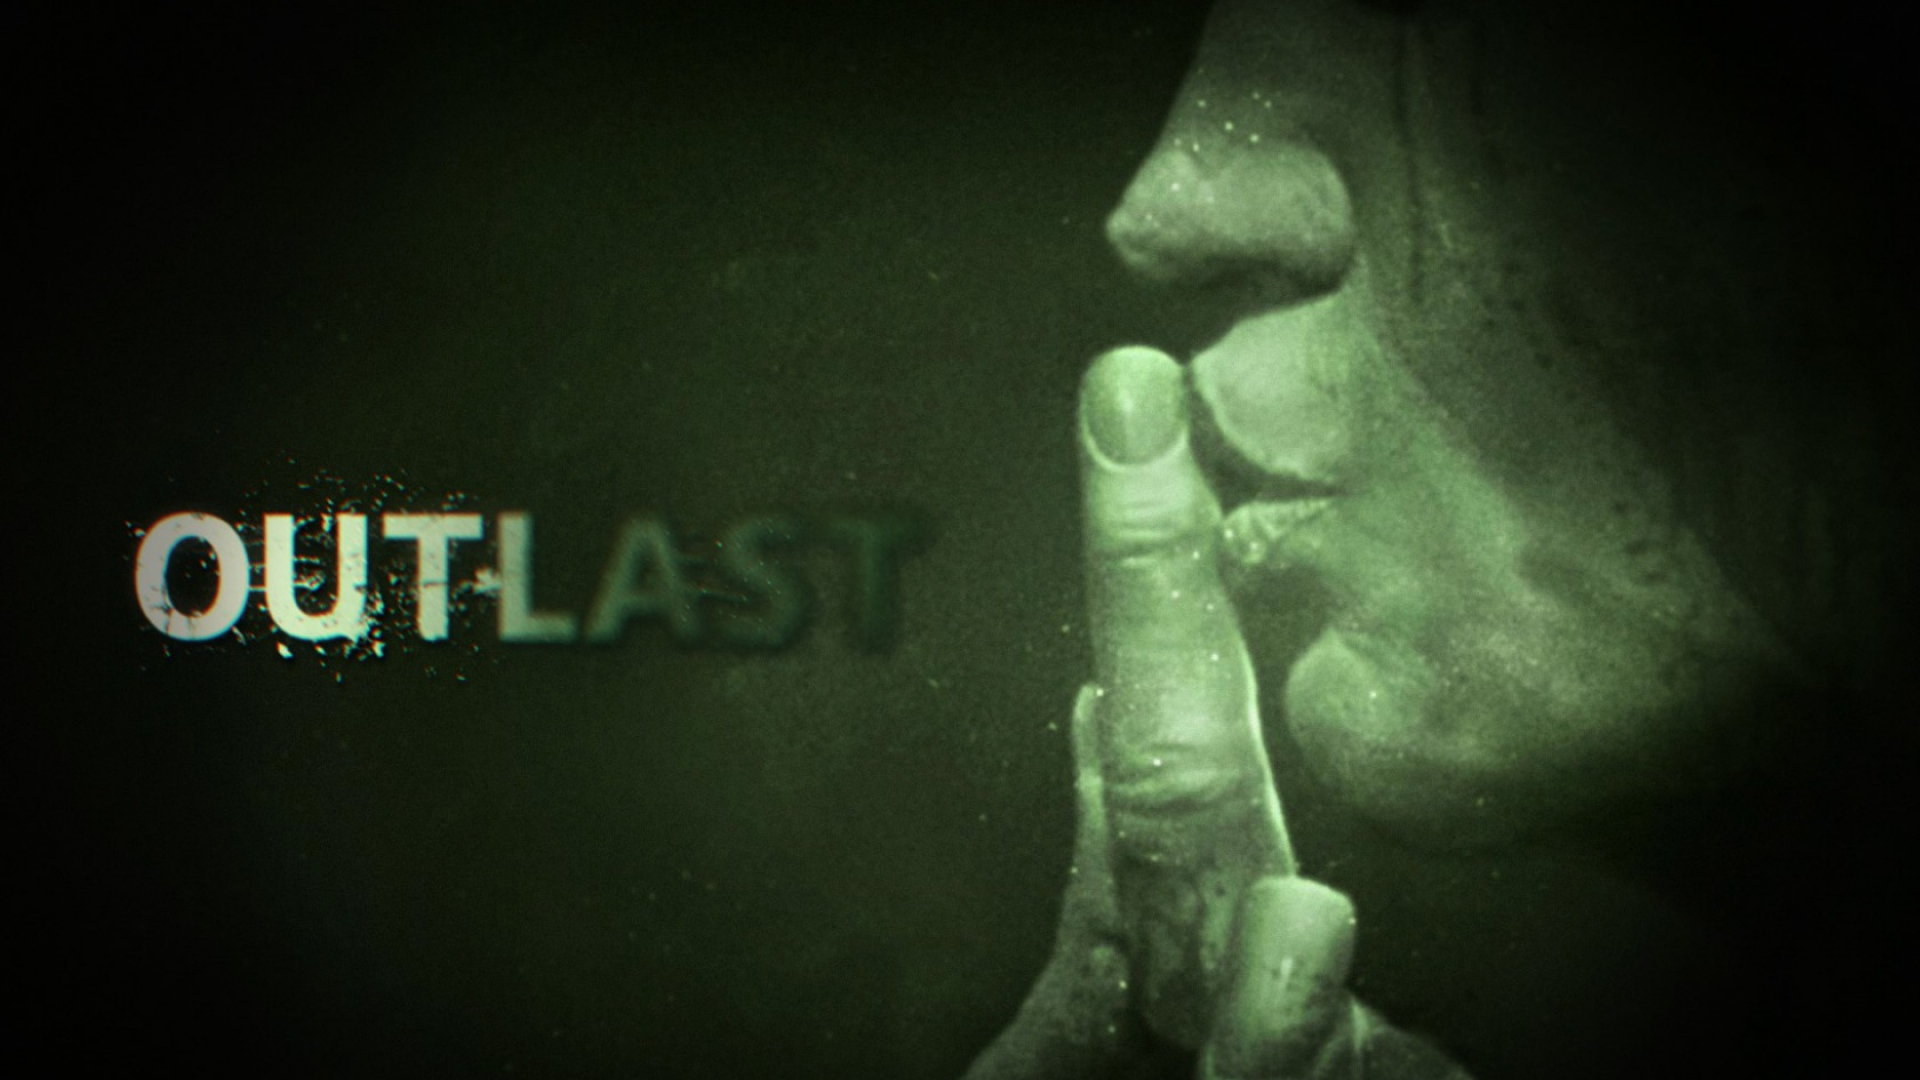 Outlast Wallpaper HD Wallpaper Background Image 1920x1080 ID 1920x1080